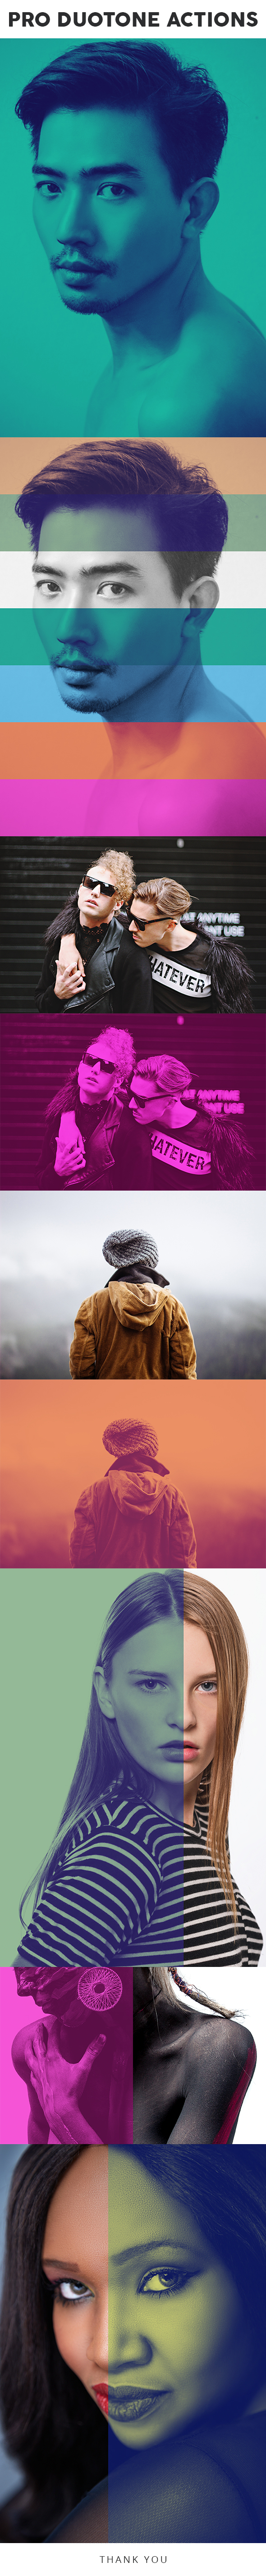 Pro DUOTONE Photoshop Actions - Photo Effects Actions